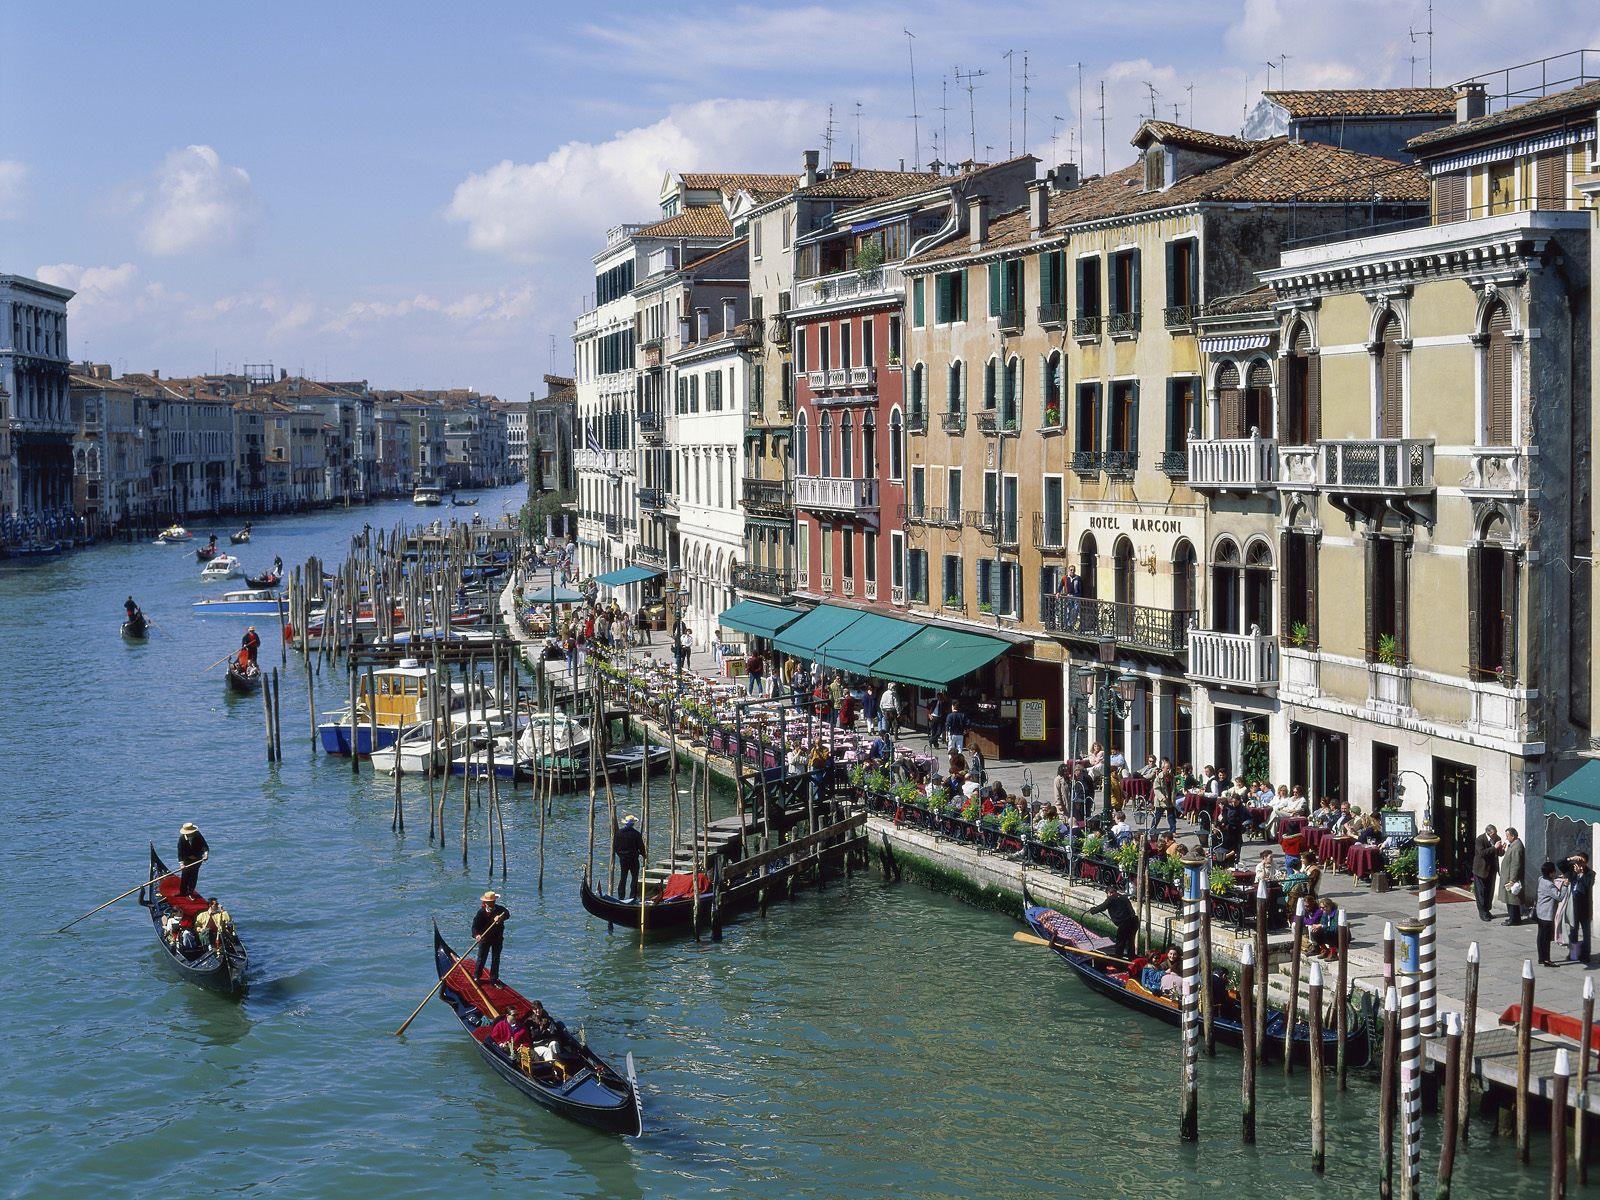 The Grand Canal of Venice Italy 904.29 Kb